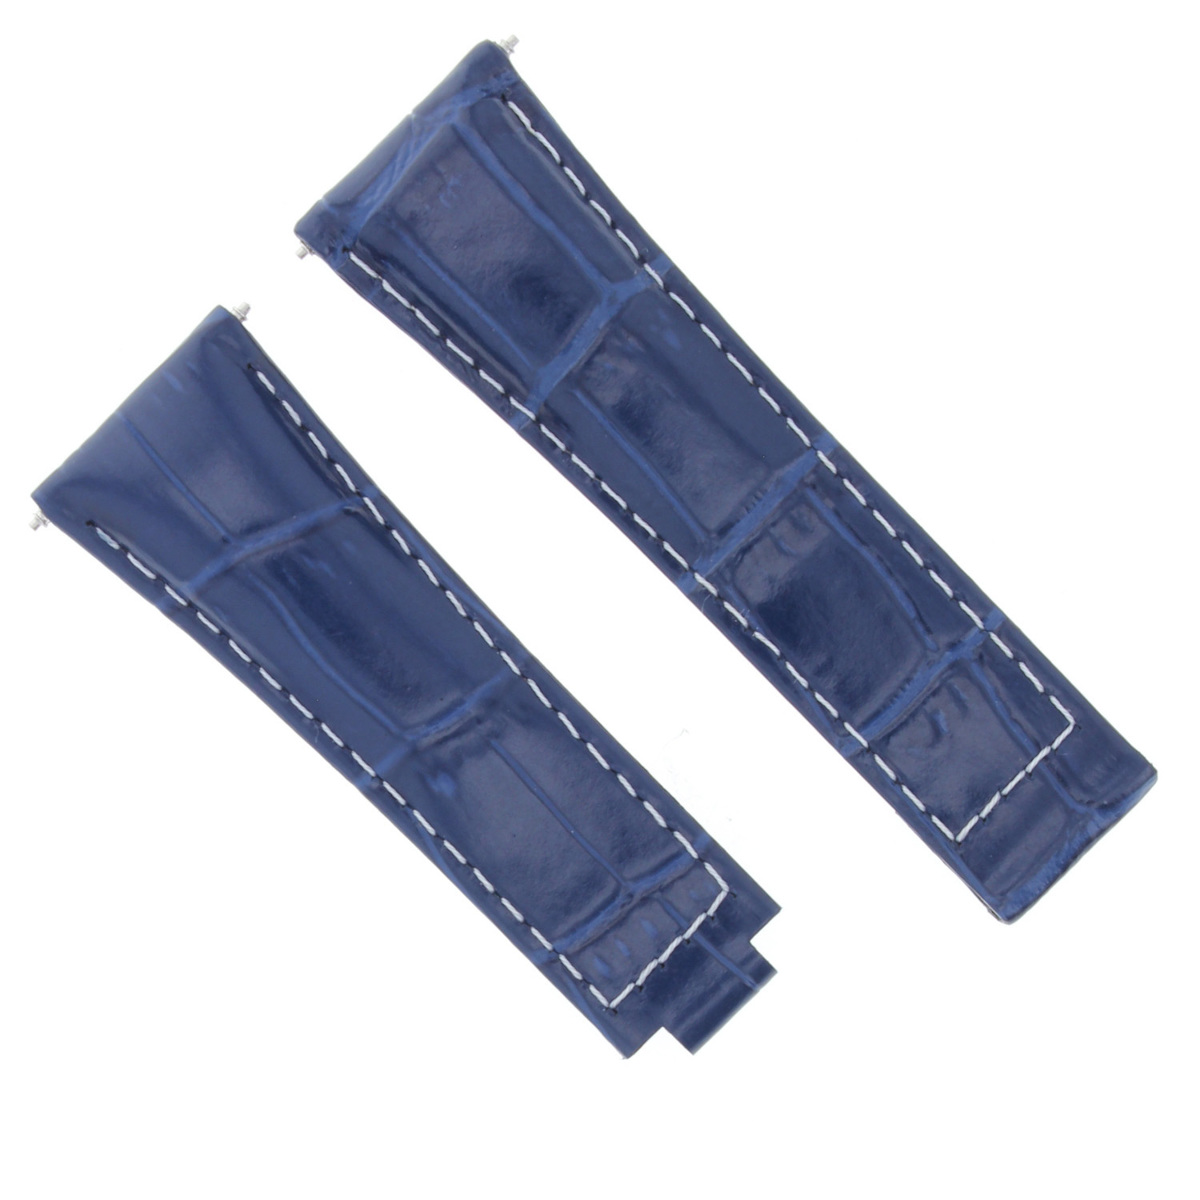 LEATHER STRAP WATCH BAND FOR ROLEX DAYTONA 16518 16519 16520 16523 16528 BLUE WS